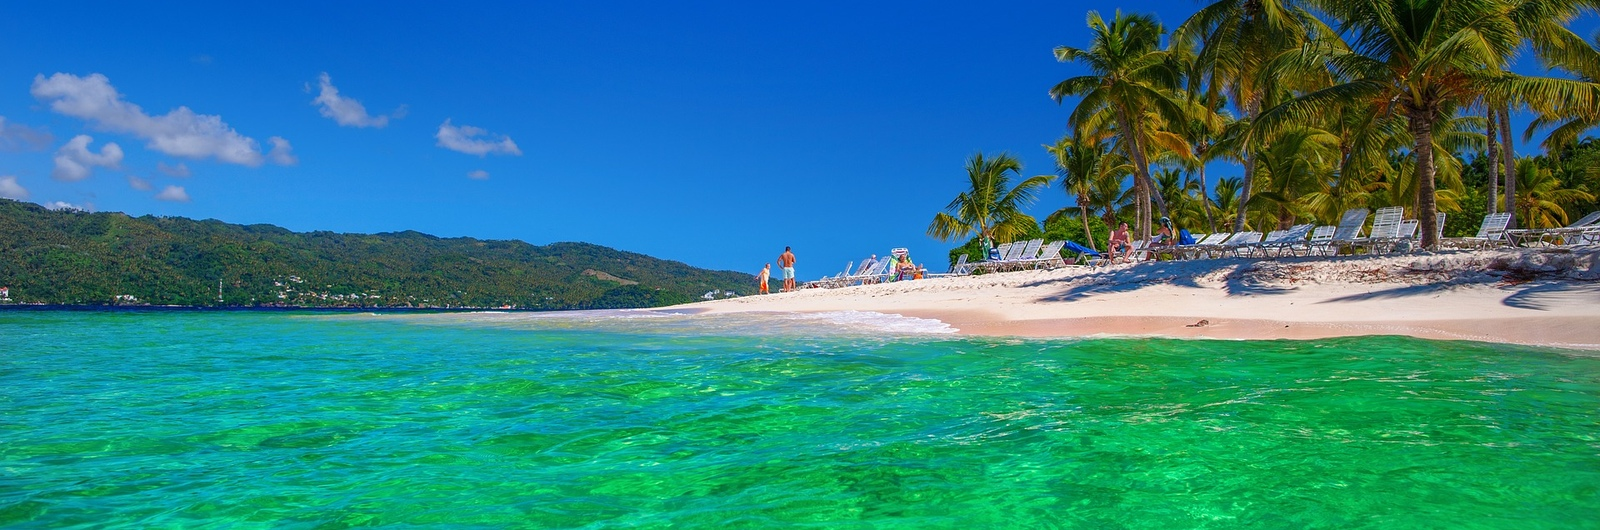 dominican republic country header